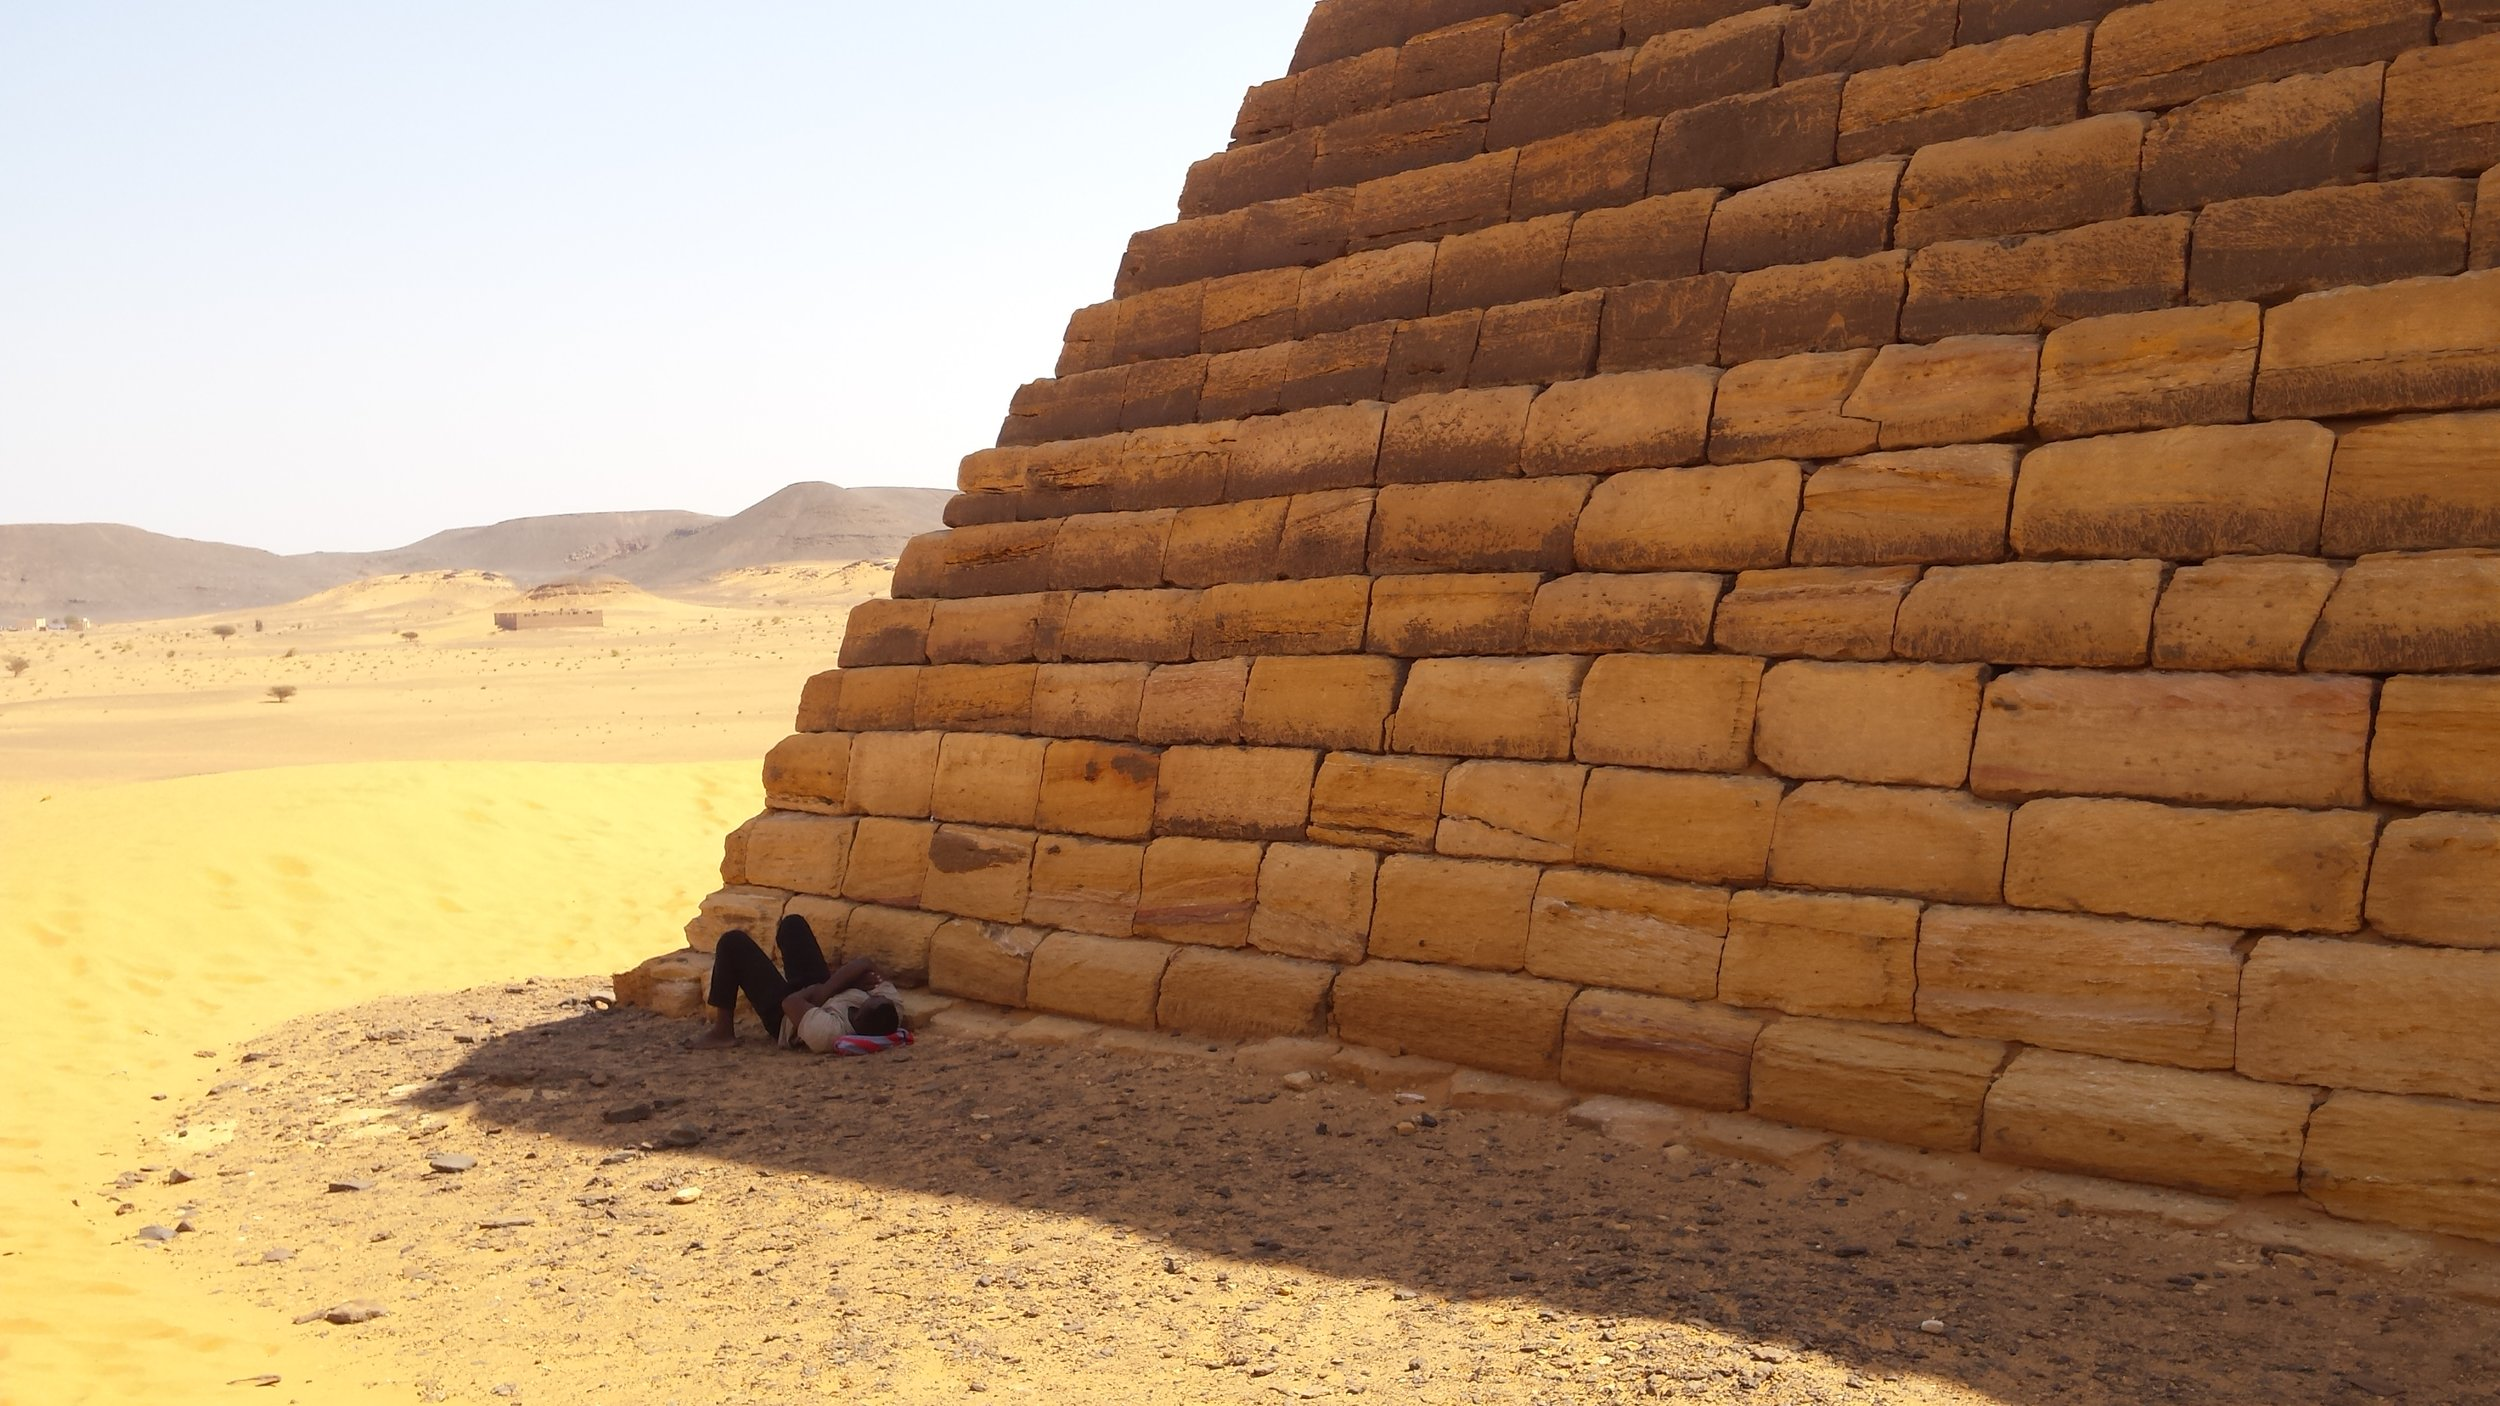 Roba did not give a fu— about pyramids.